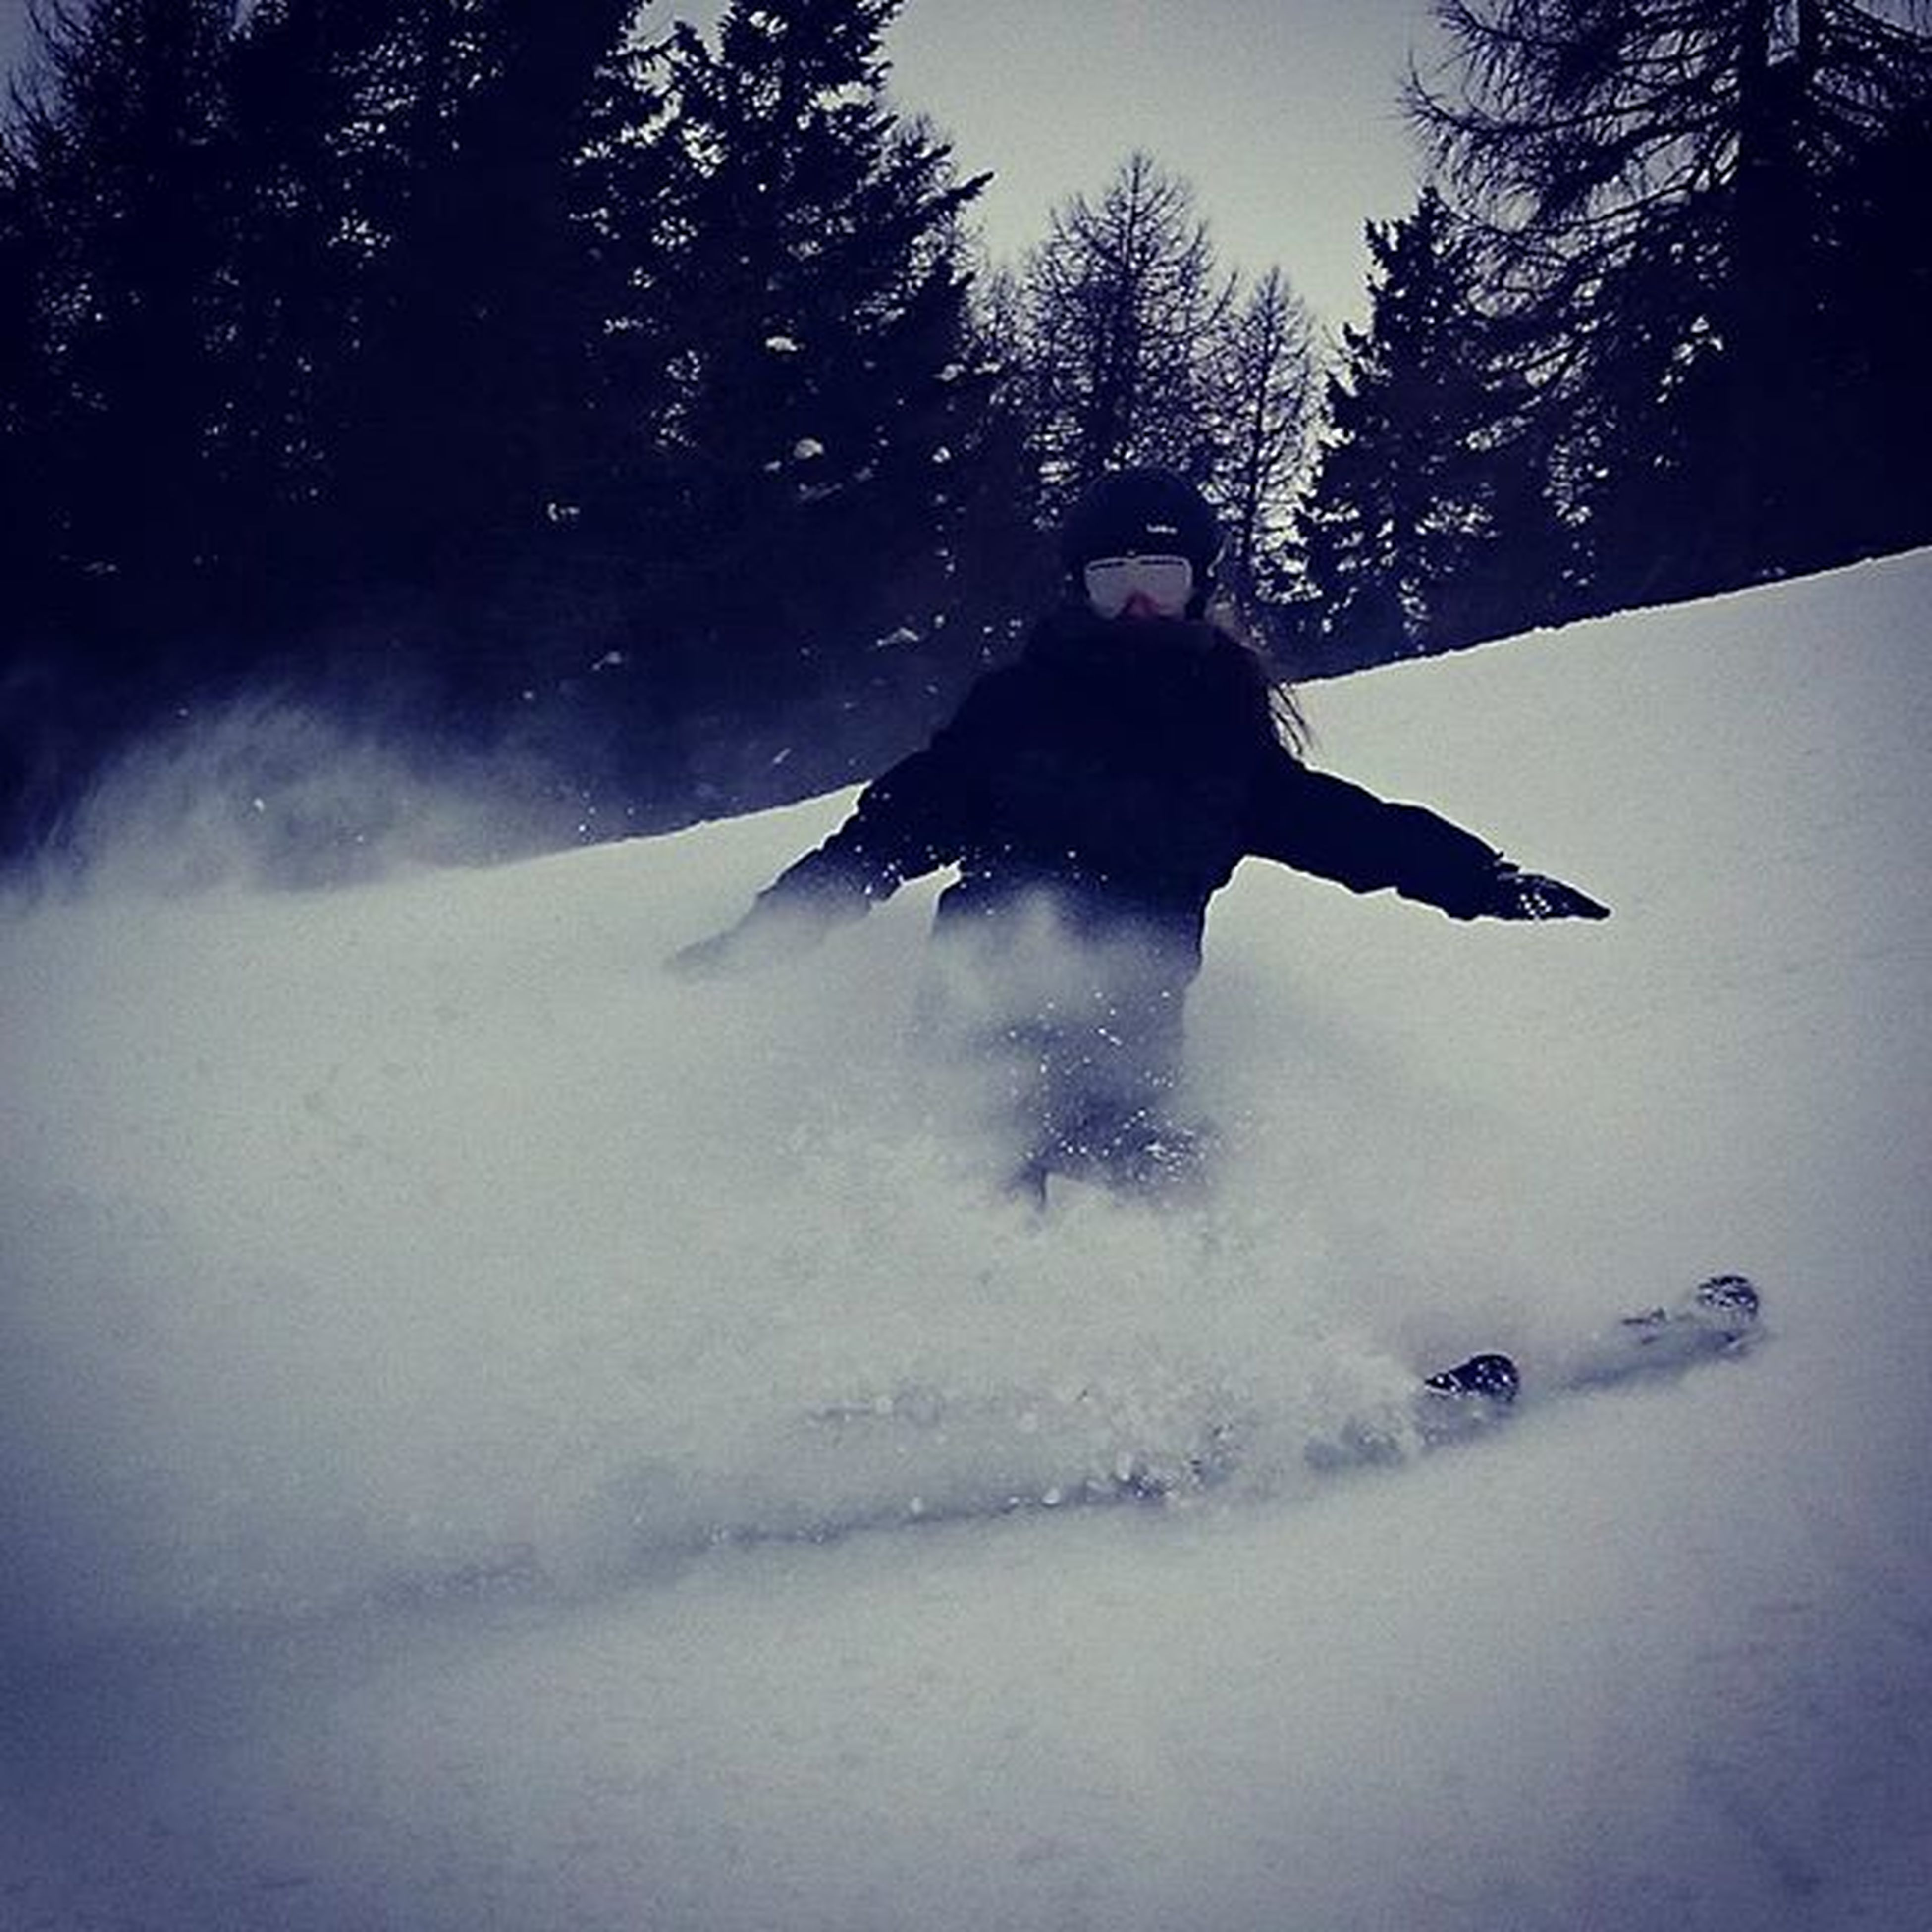 lifestyles, leisure activity, full length, winter, snow, cold temperature, young adult, motion, season, weather, jumping, men, mid-air, front view, young men, person, extreme sports, enjoyment